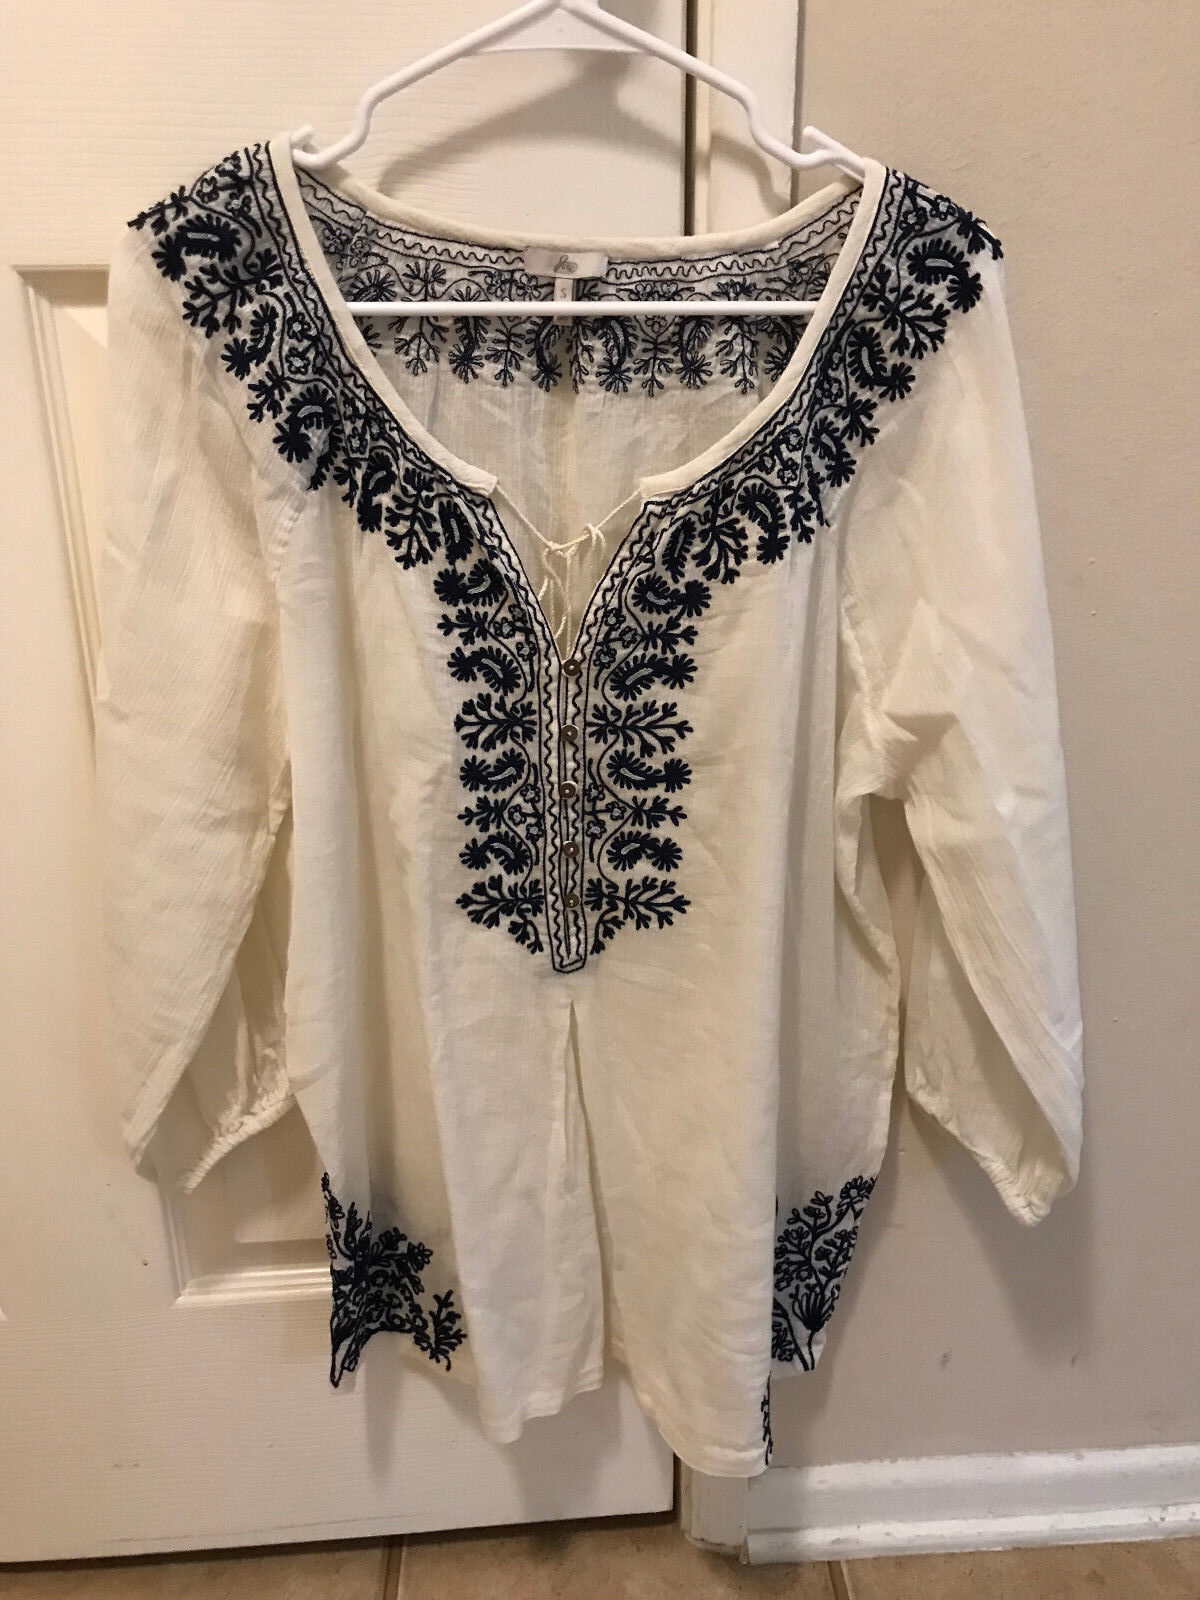 NWOT Joie silk blouse top small 2 4 6